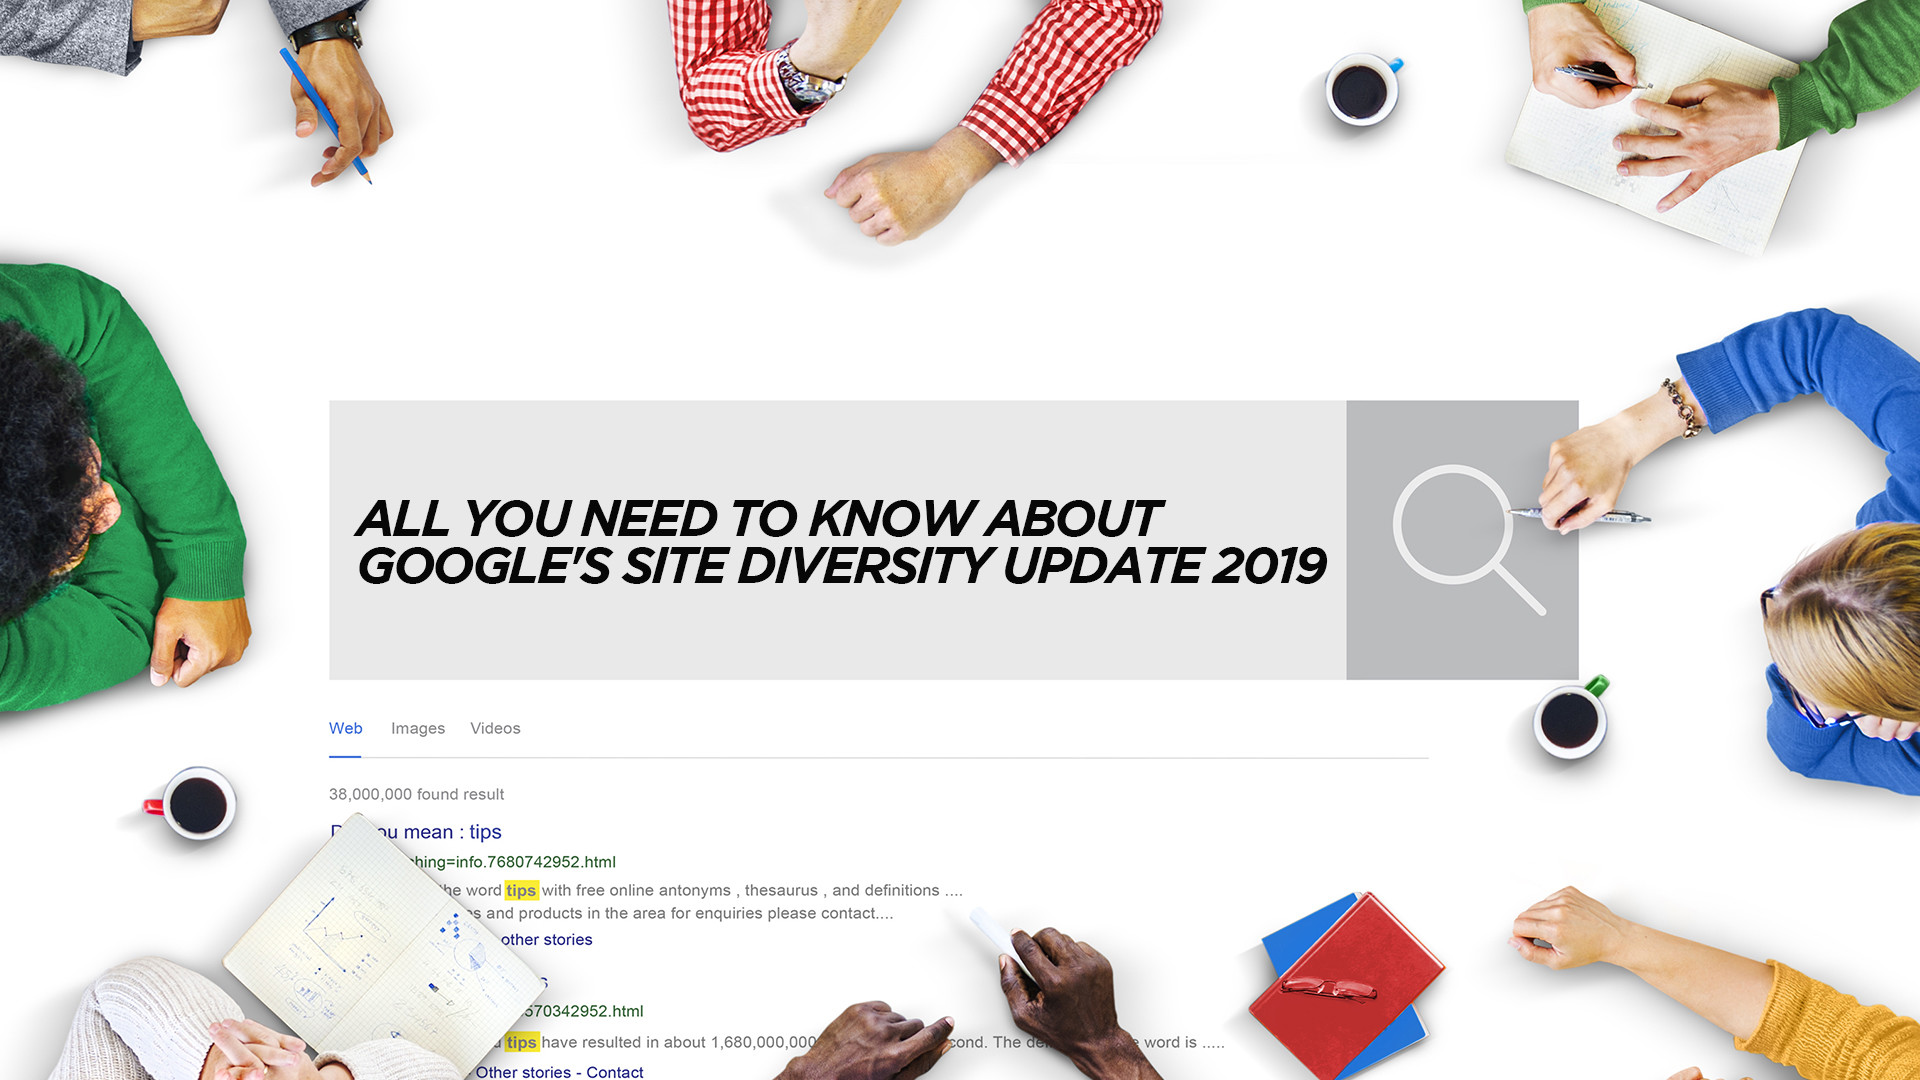 All You Need To Know About Google's Site Diversity Update 2019